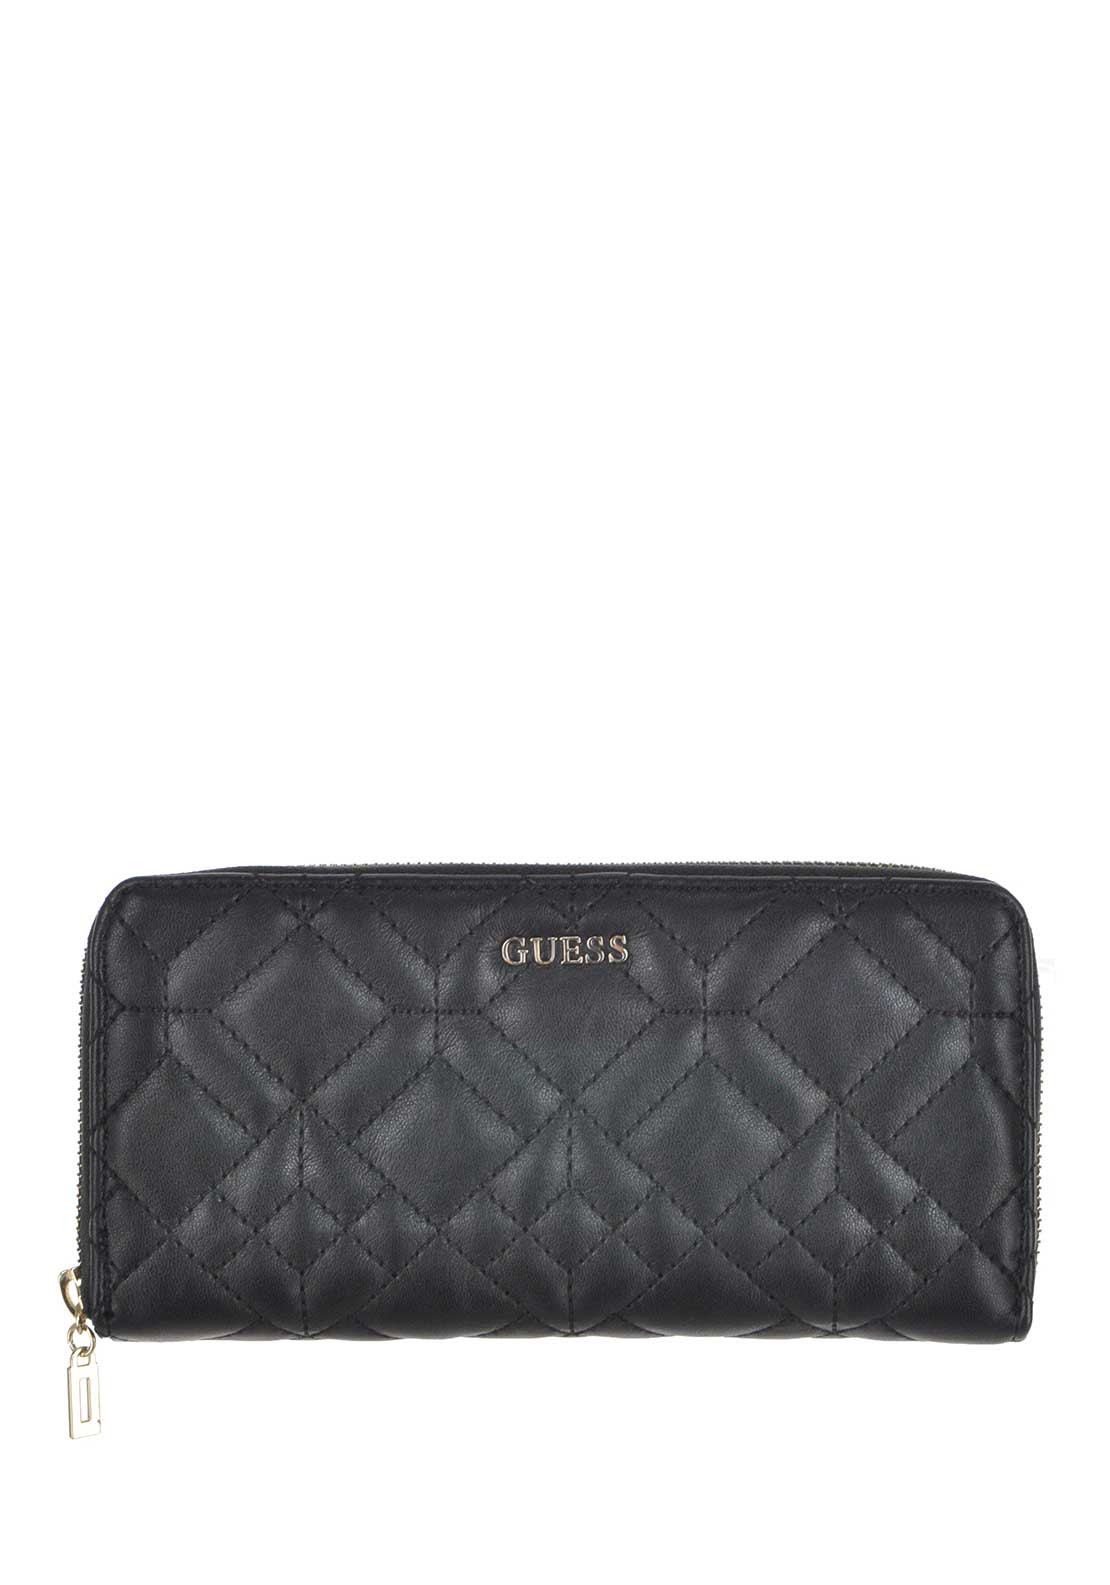 Guess Womens Ines Large Zip Around Wallet, Black